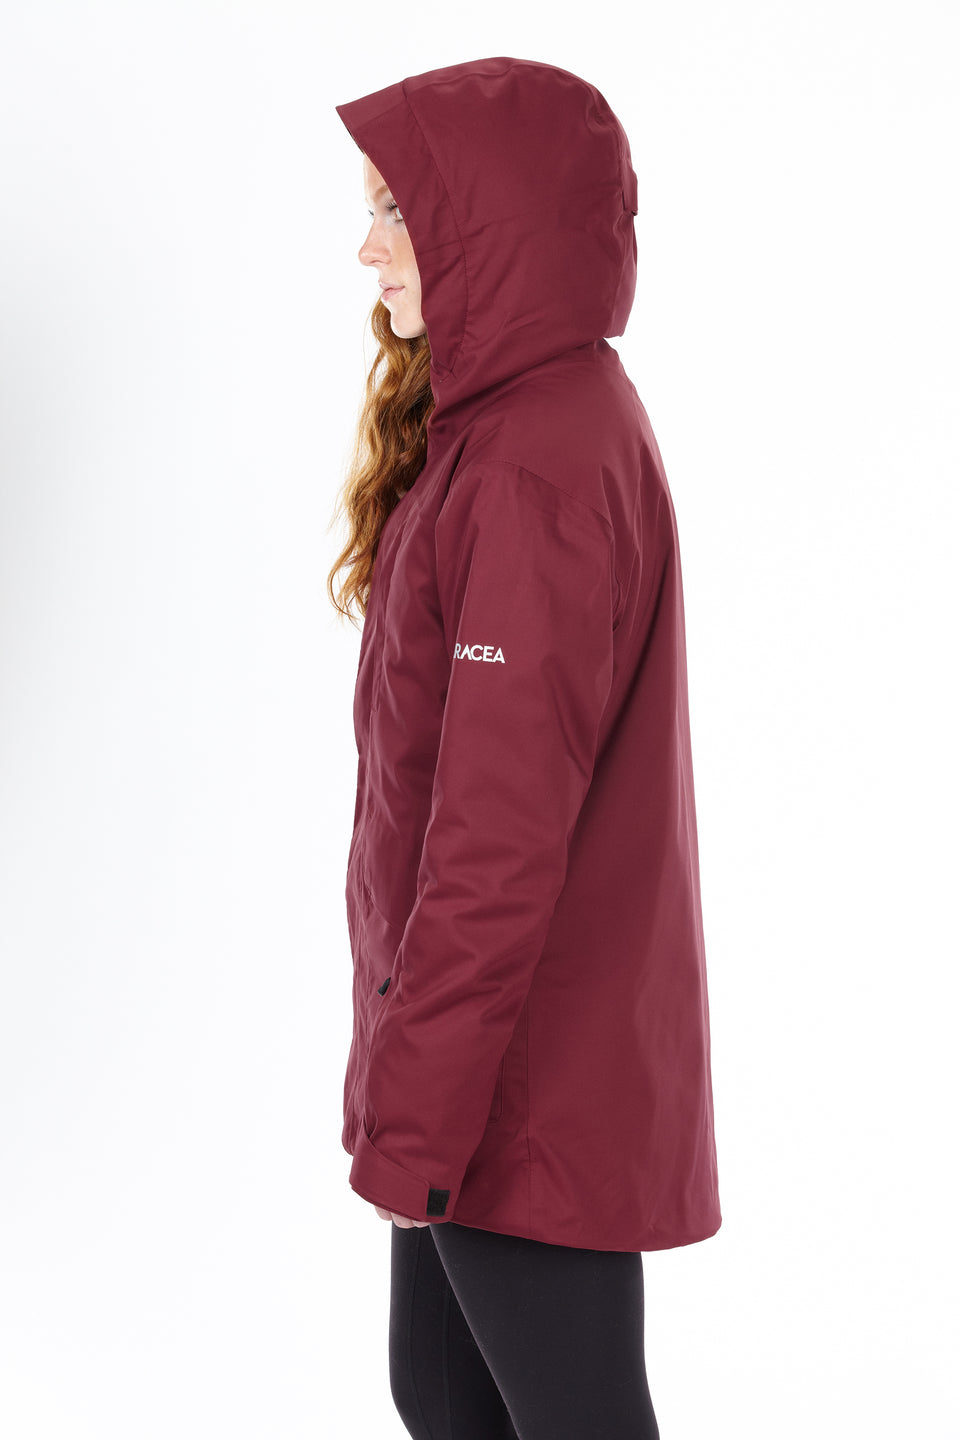 HUNTINGTON (WOMEN'S) INSULATED JACKET by Terracea - Waterproof, Windproof, Weatherproof Technical Outerwear